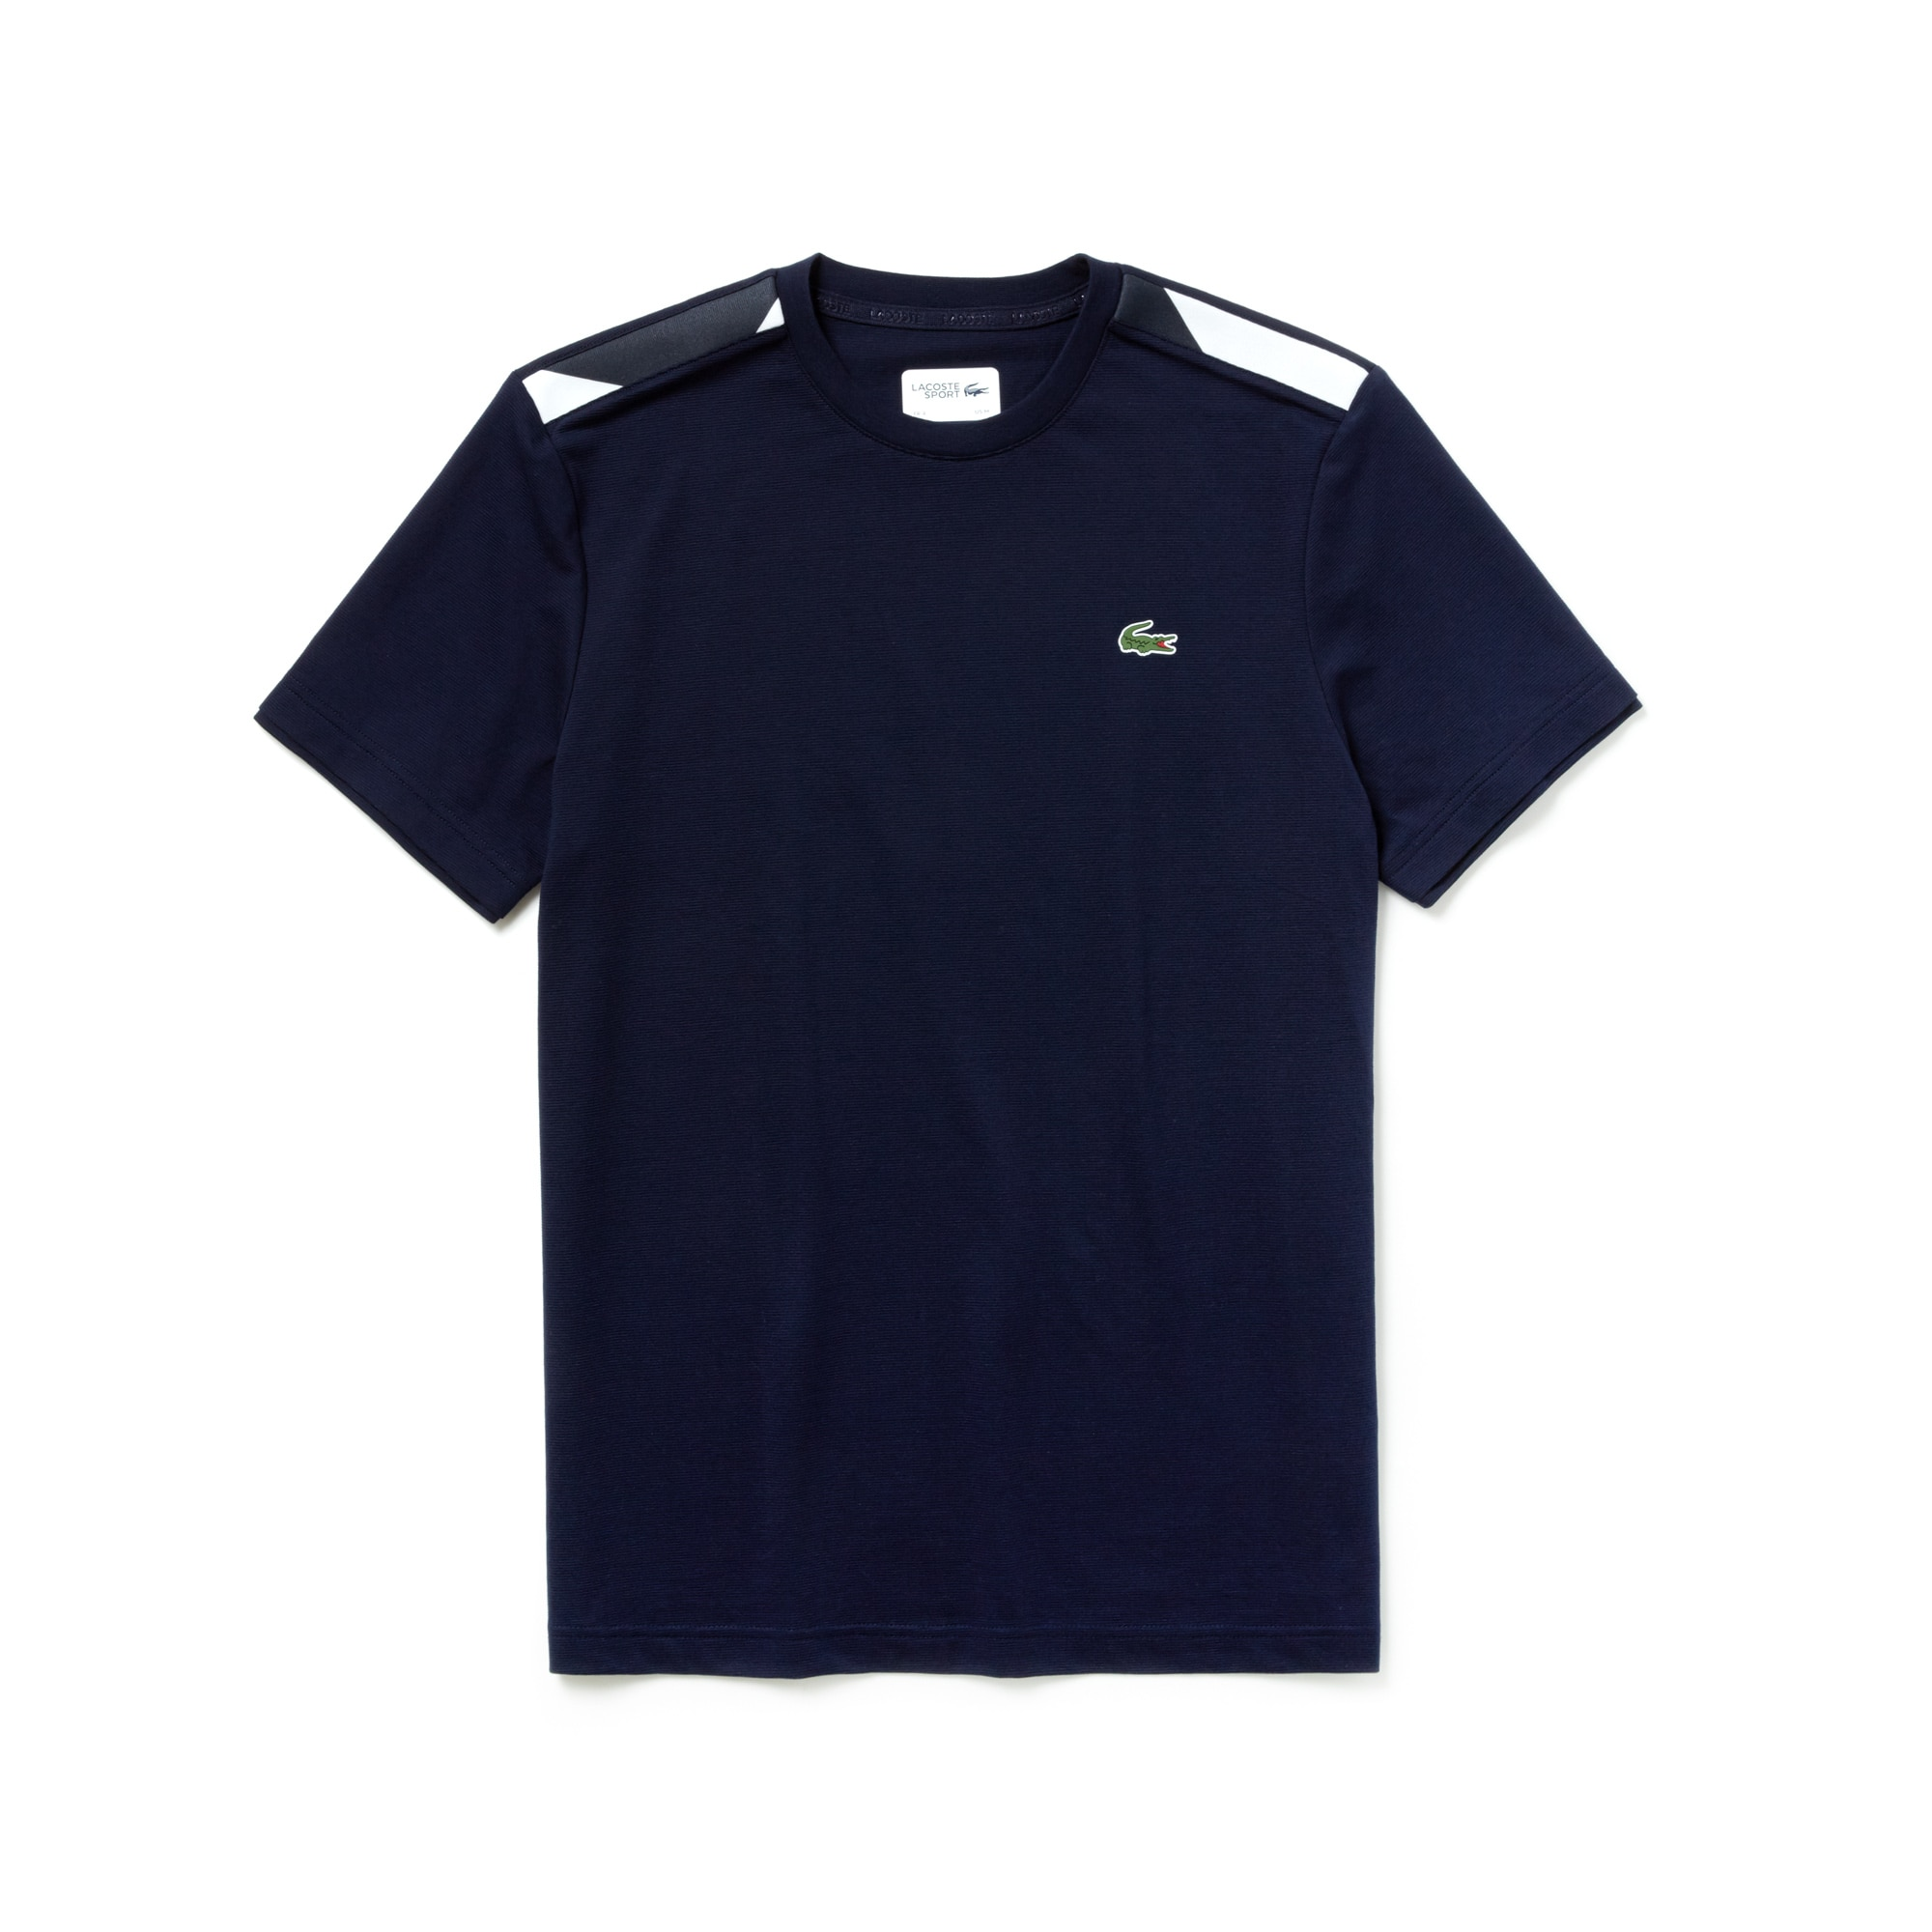 Men's SPORT Contrast Accents Cotton Tennis T-shirt